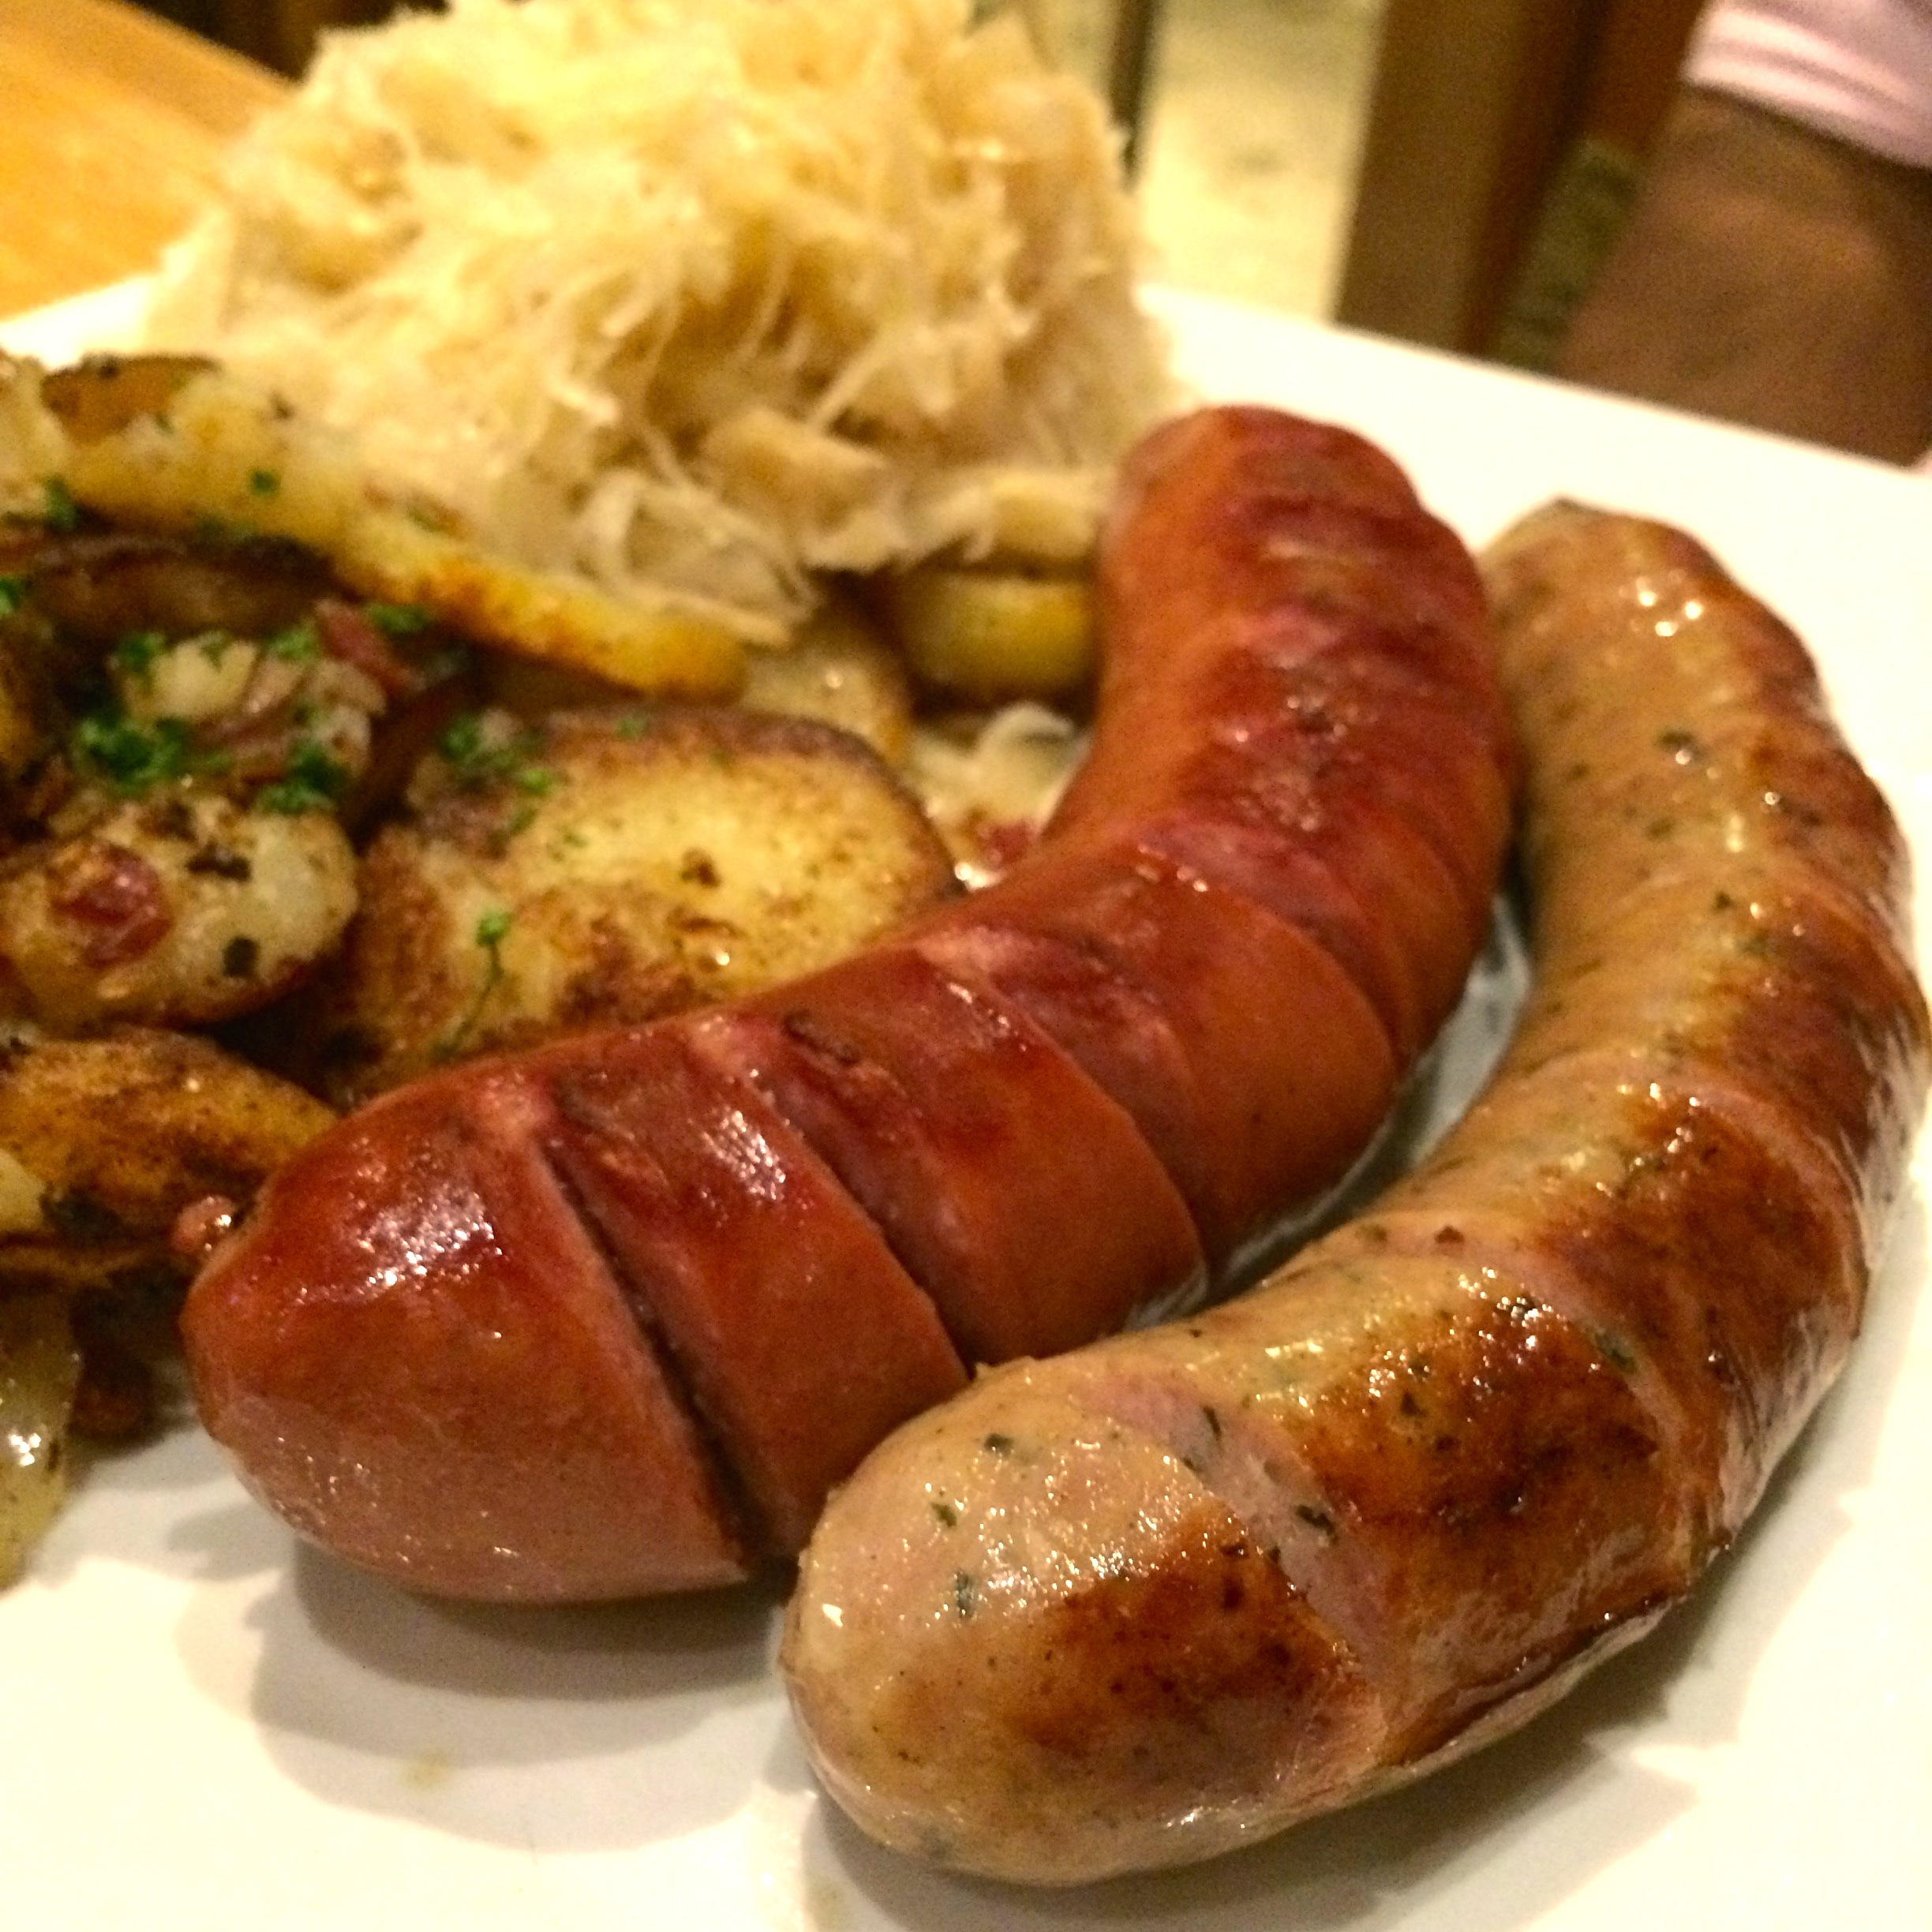 WURST PLATTE: Rattle Snake & Pork Bratwurst (lighter colored) and the Beef Smoked Bratwurst (darker colored) - $15.00